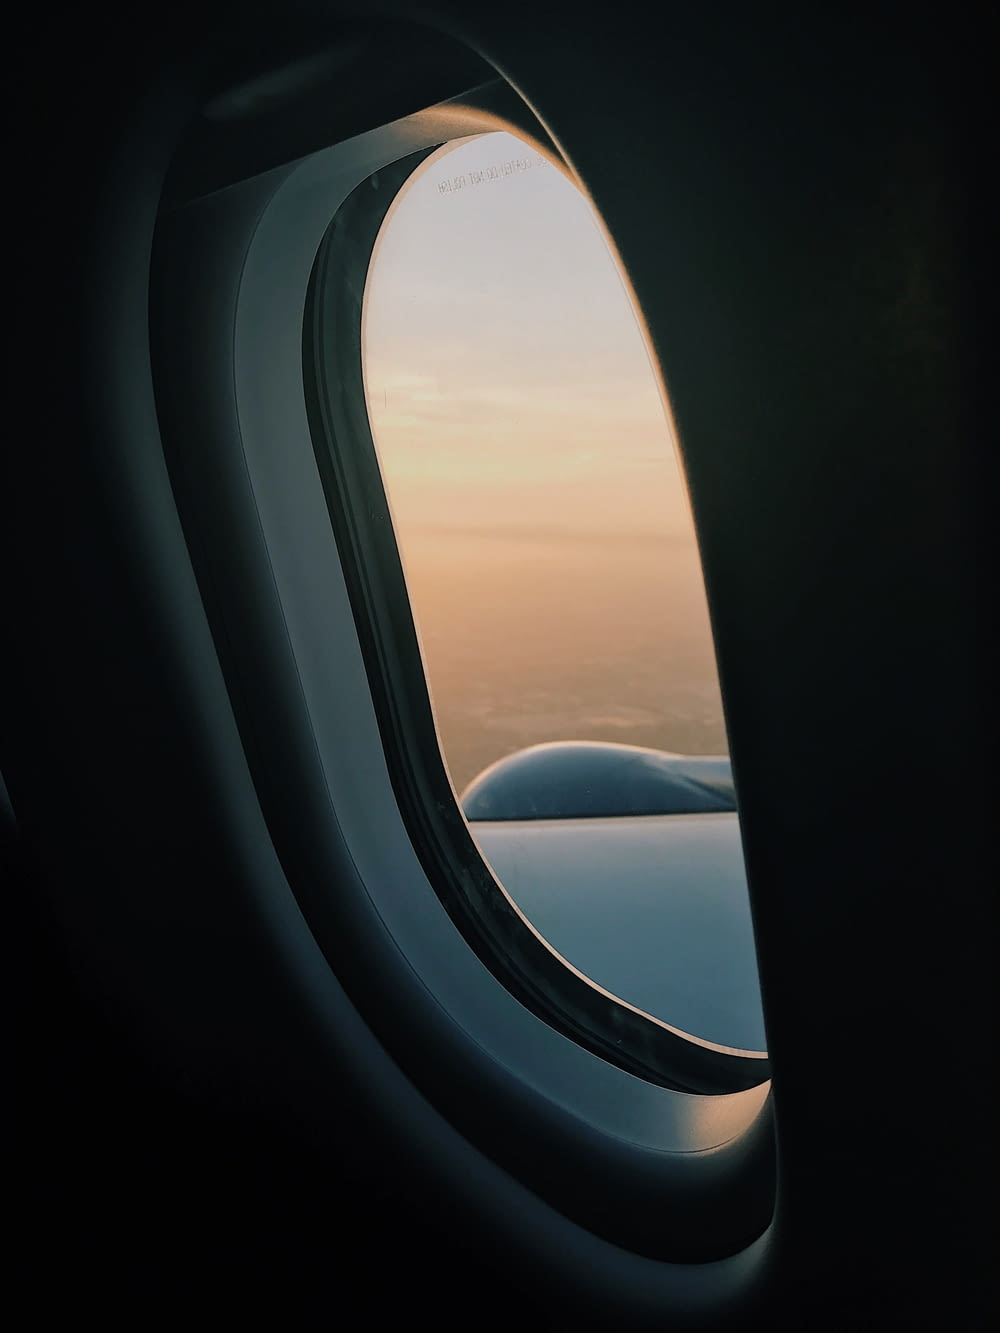 person inside plane at high altitude taking picture of left wing during daytime